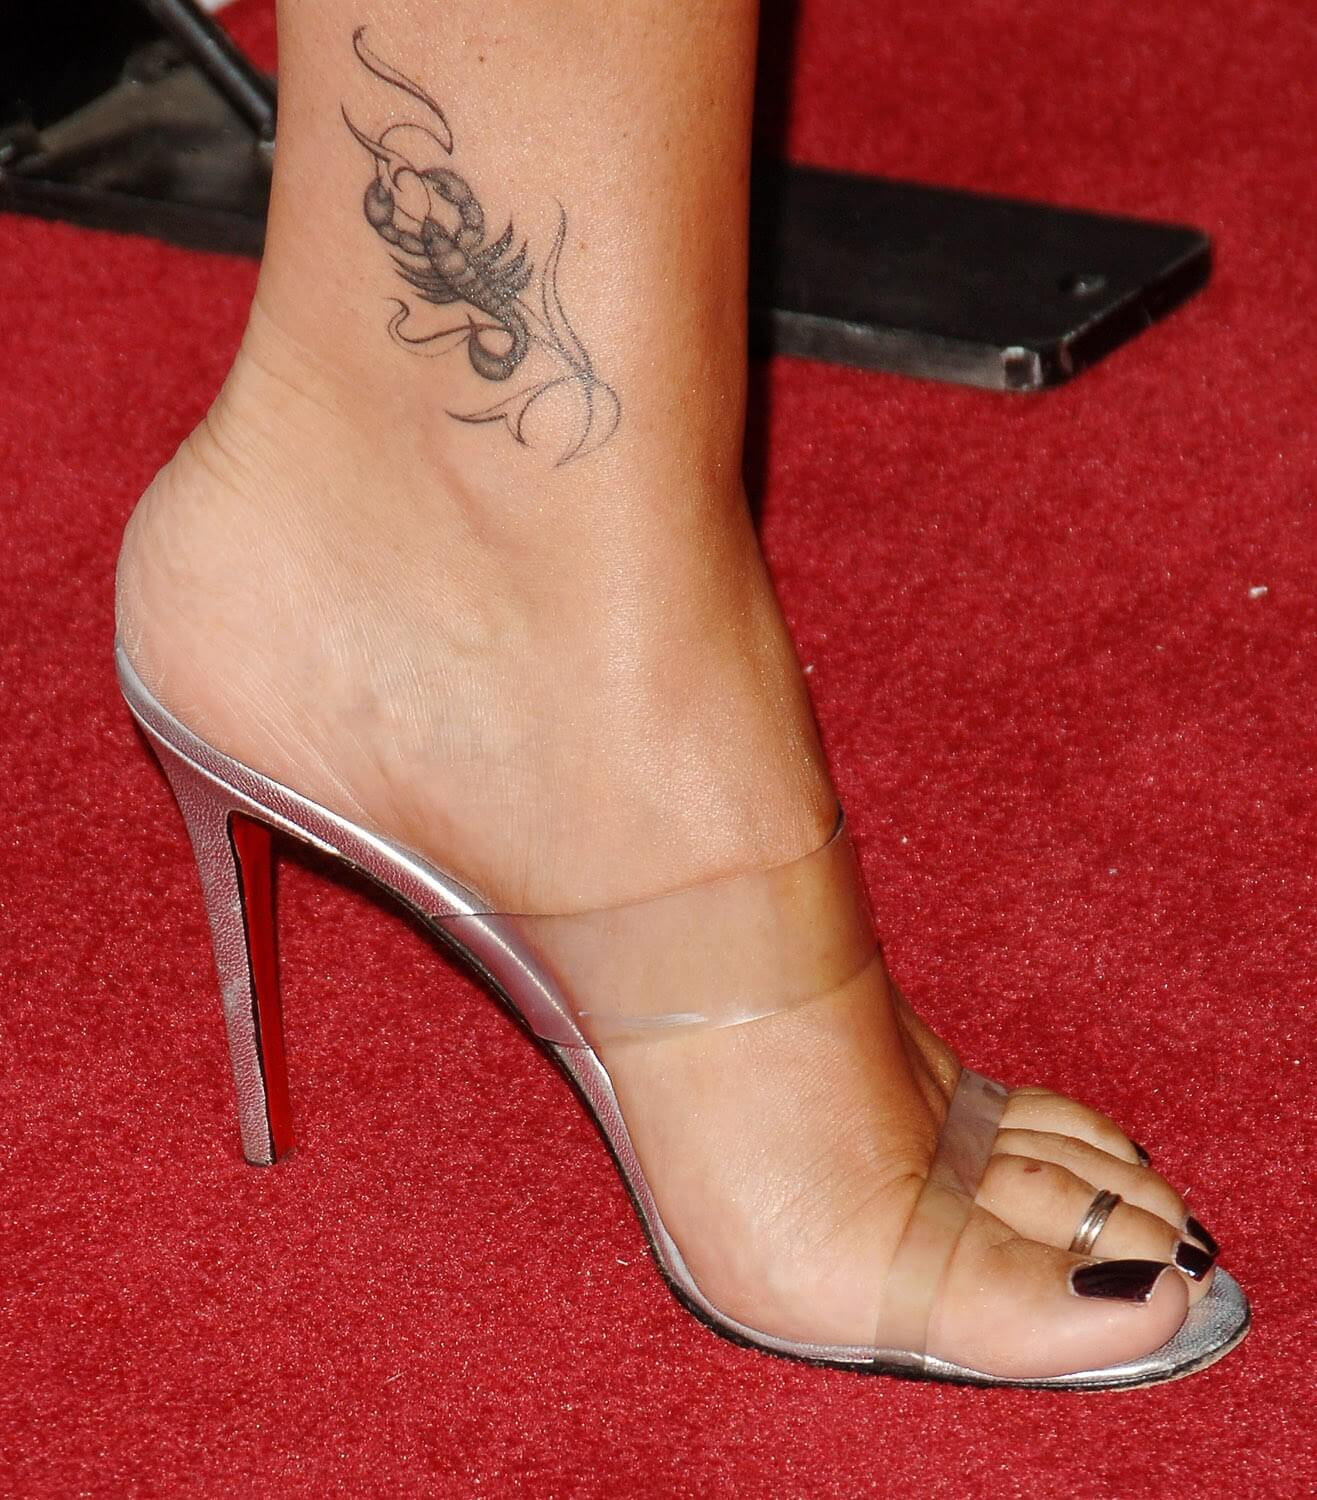 Tattoo Ideas Quick: Quick Gallery With Tattoos On Ankle